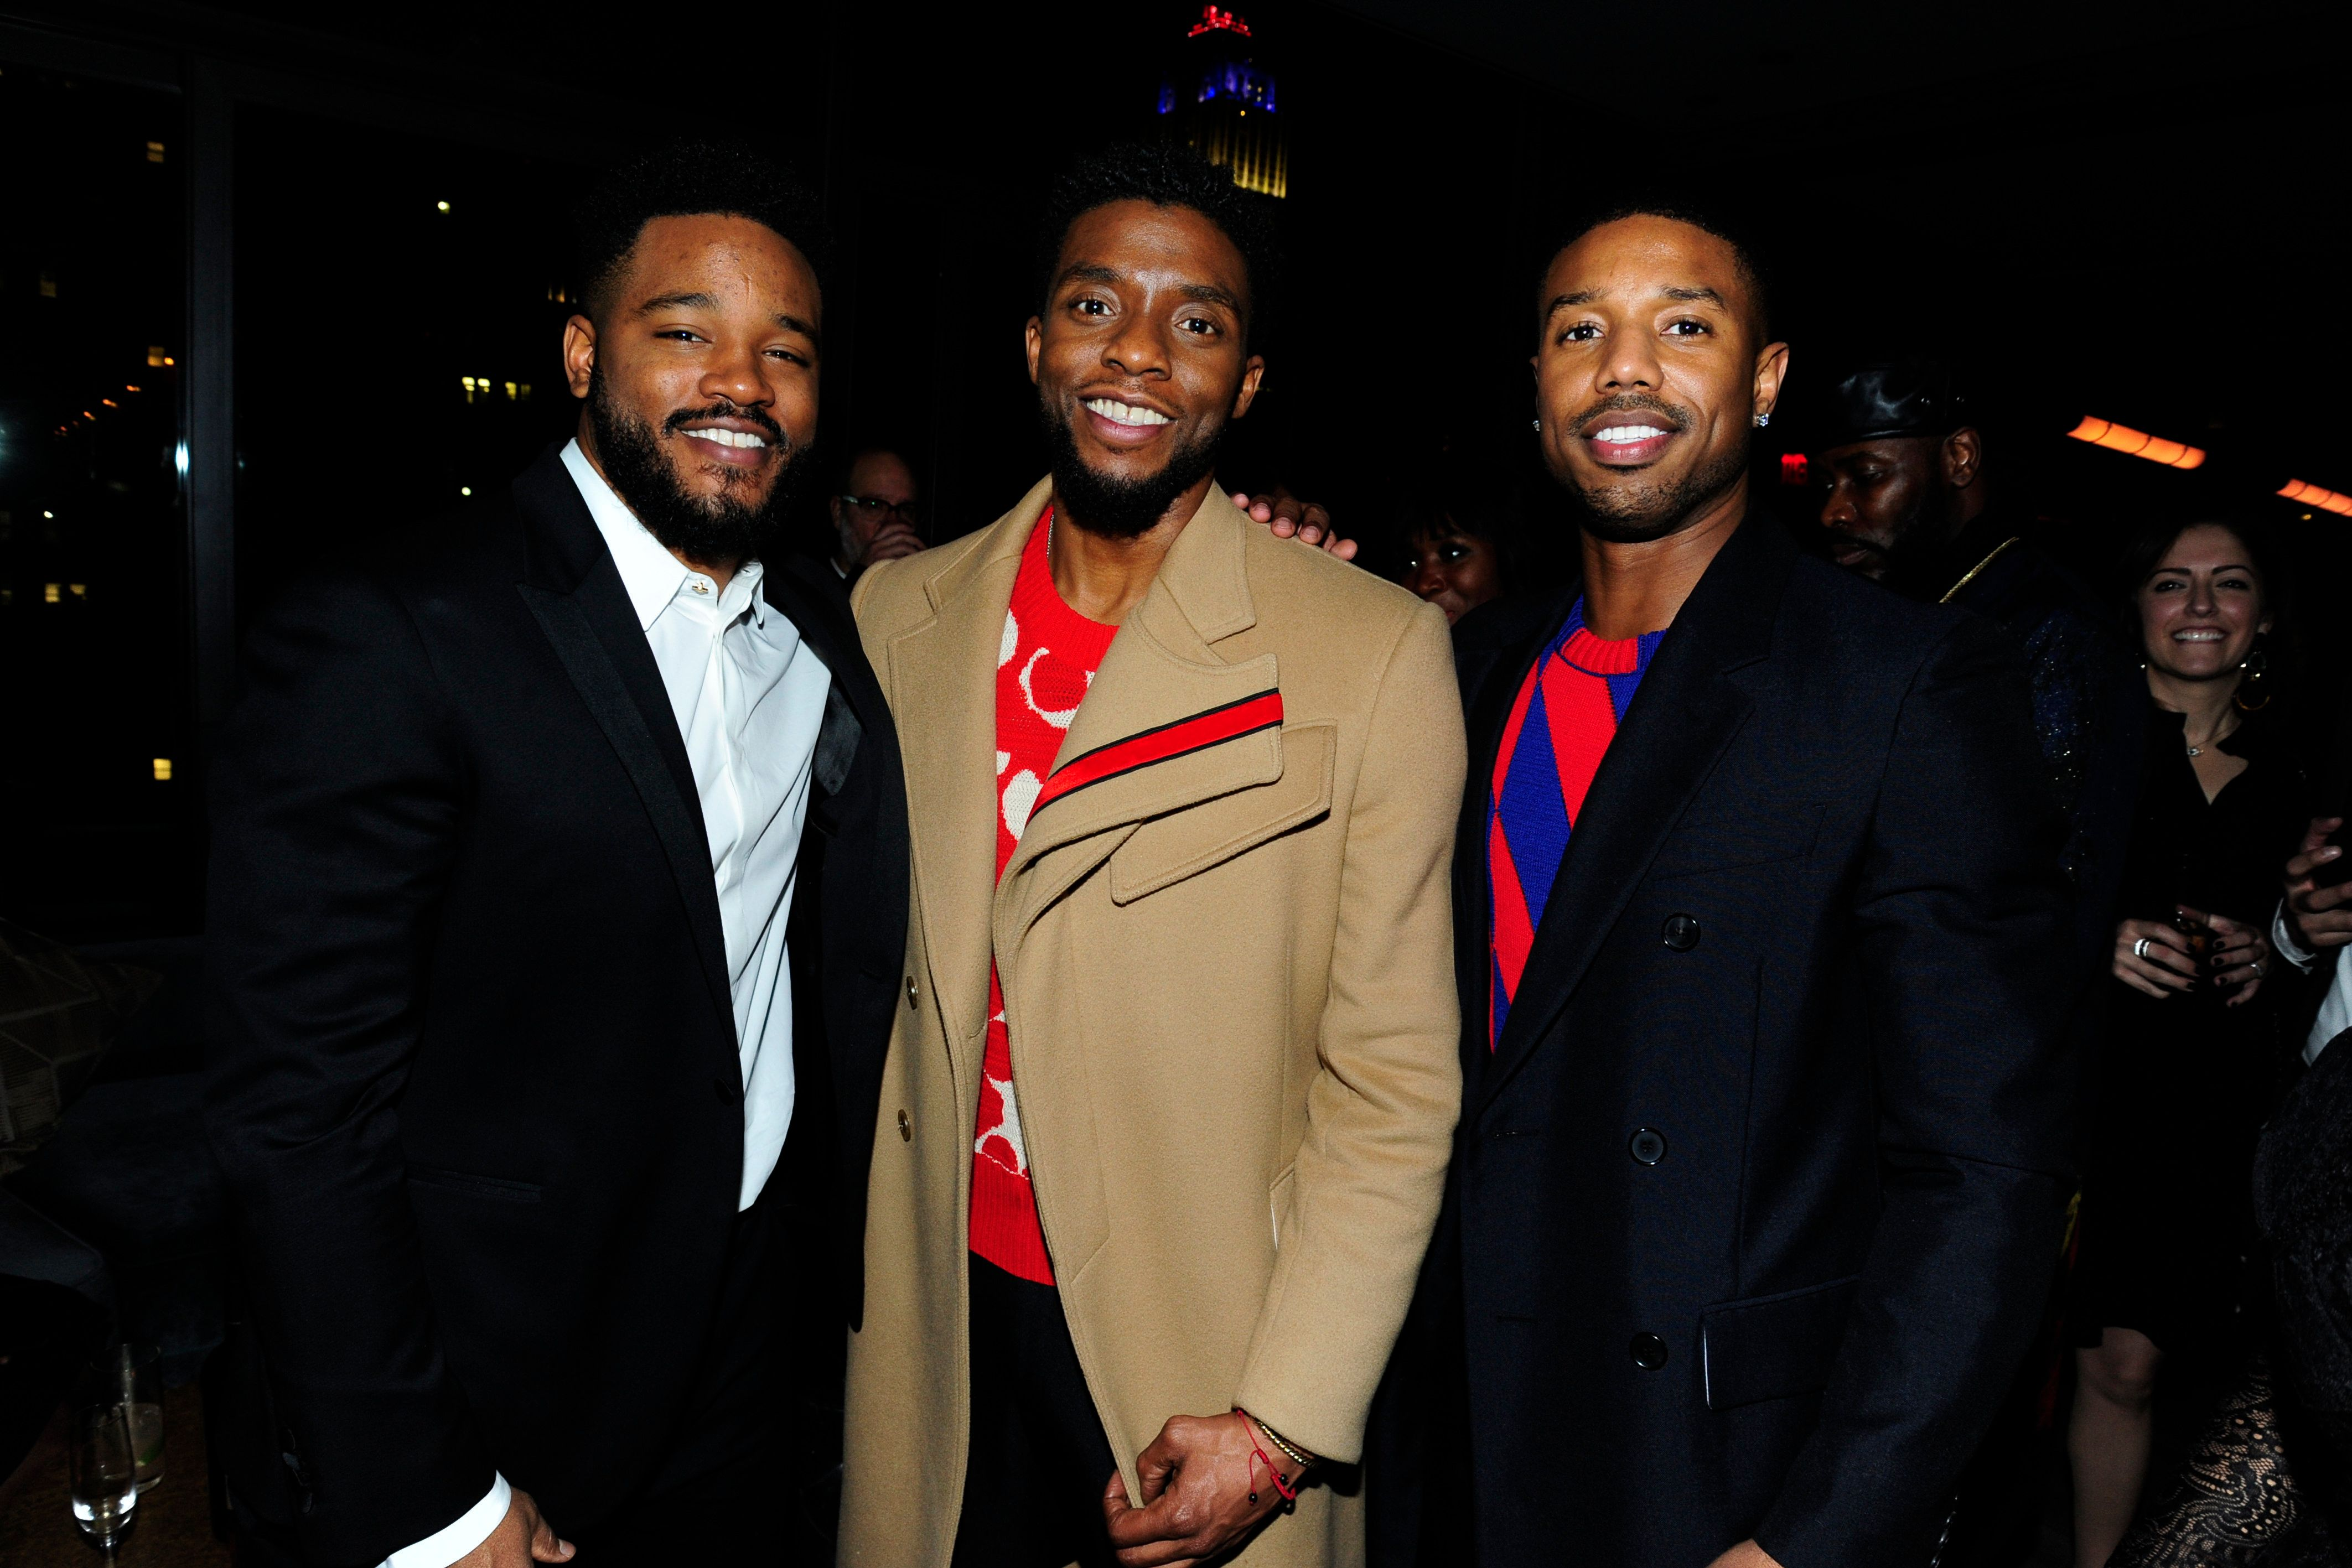 NEW YORK, NY - FEBRUARY 13: Ryan Coogler, Chadwick Boseman and Michael B. Jordan attend The Cinema Society with Ravage Wines & Synchrony host the after party for Marvel Studios' 'Black Panther' at The Skylark on February 13, 2018 in New York City.  (Photo by Paul Bruinooge/Patrick McMullan via Getty Images)